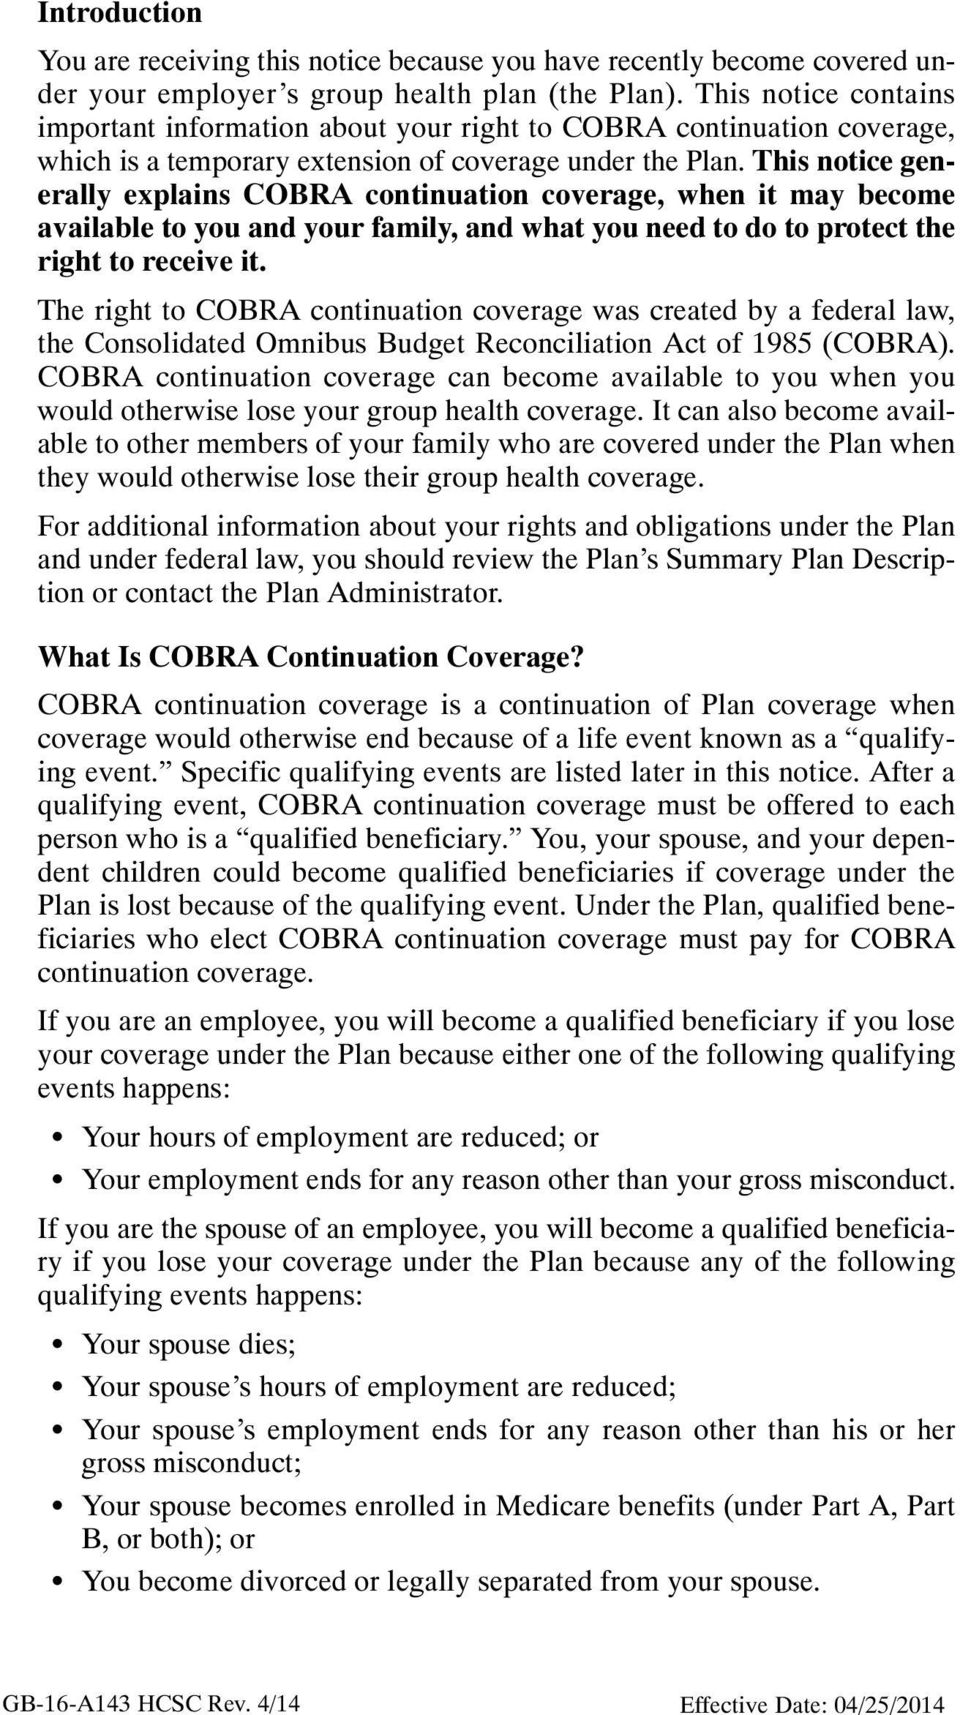 This notice generally explains COBRA continuation coverage, when it may become available to you and your family, and what you need to do to protect the right to receive it.